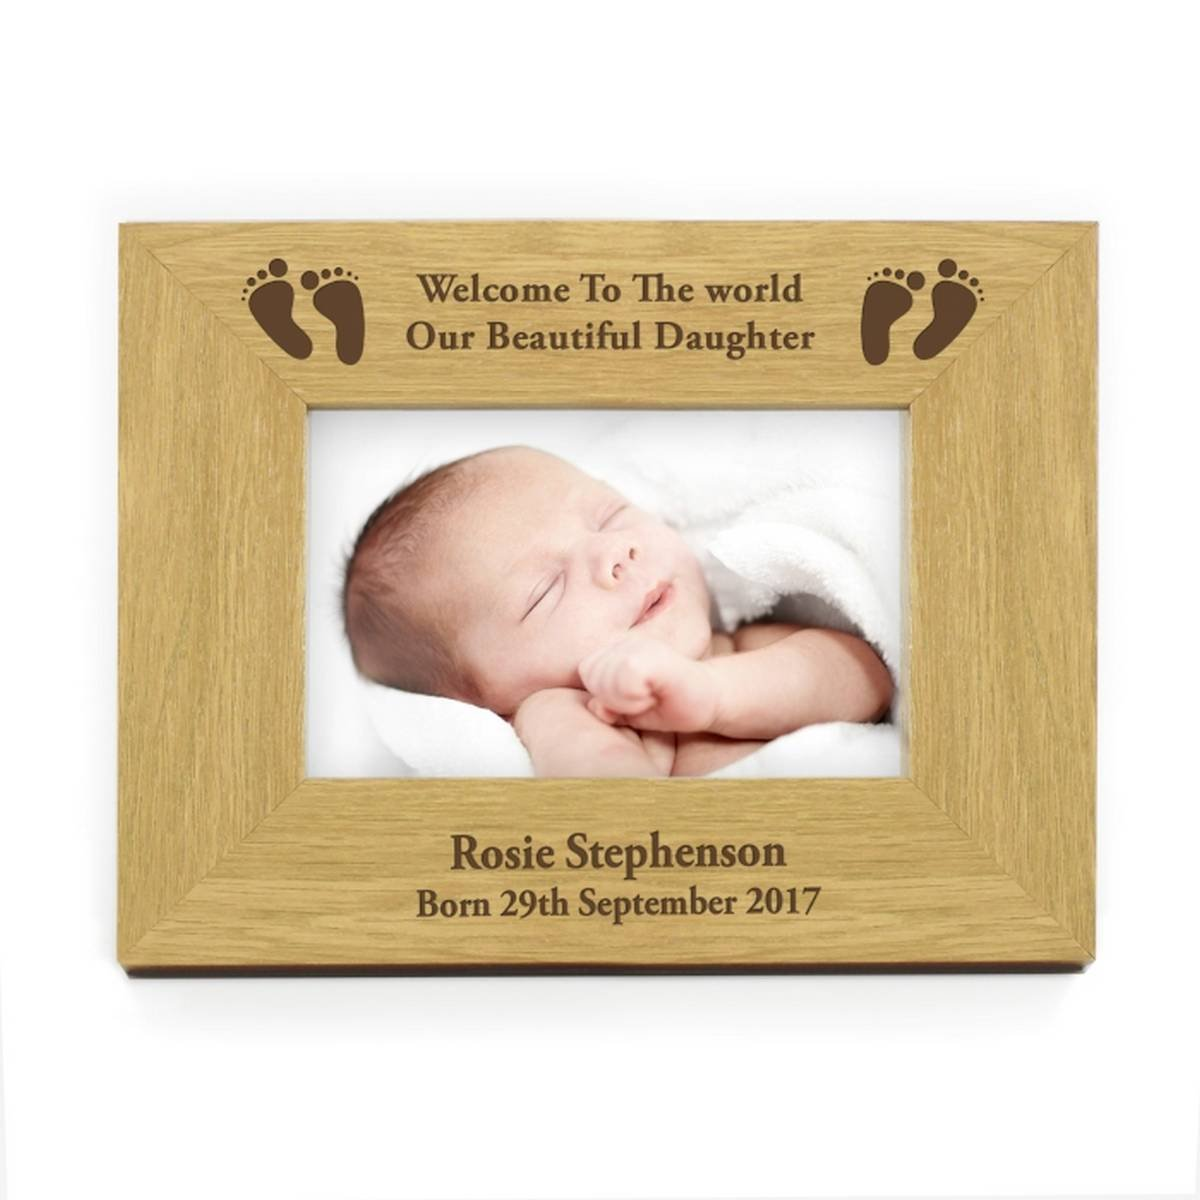 Landscape Baby Foot 6x4 Wooden Frame. This is a great product that can be personalised to your requirements ( please see main discription for full details ) Ideal gifts and presents for weddings, Christenings, Birthdays, Christmas etc… Christmas etc... Ch